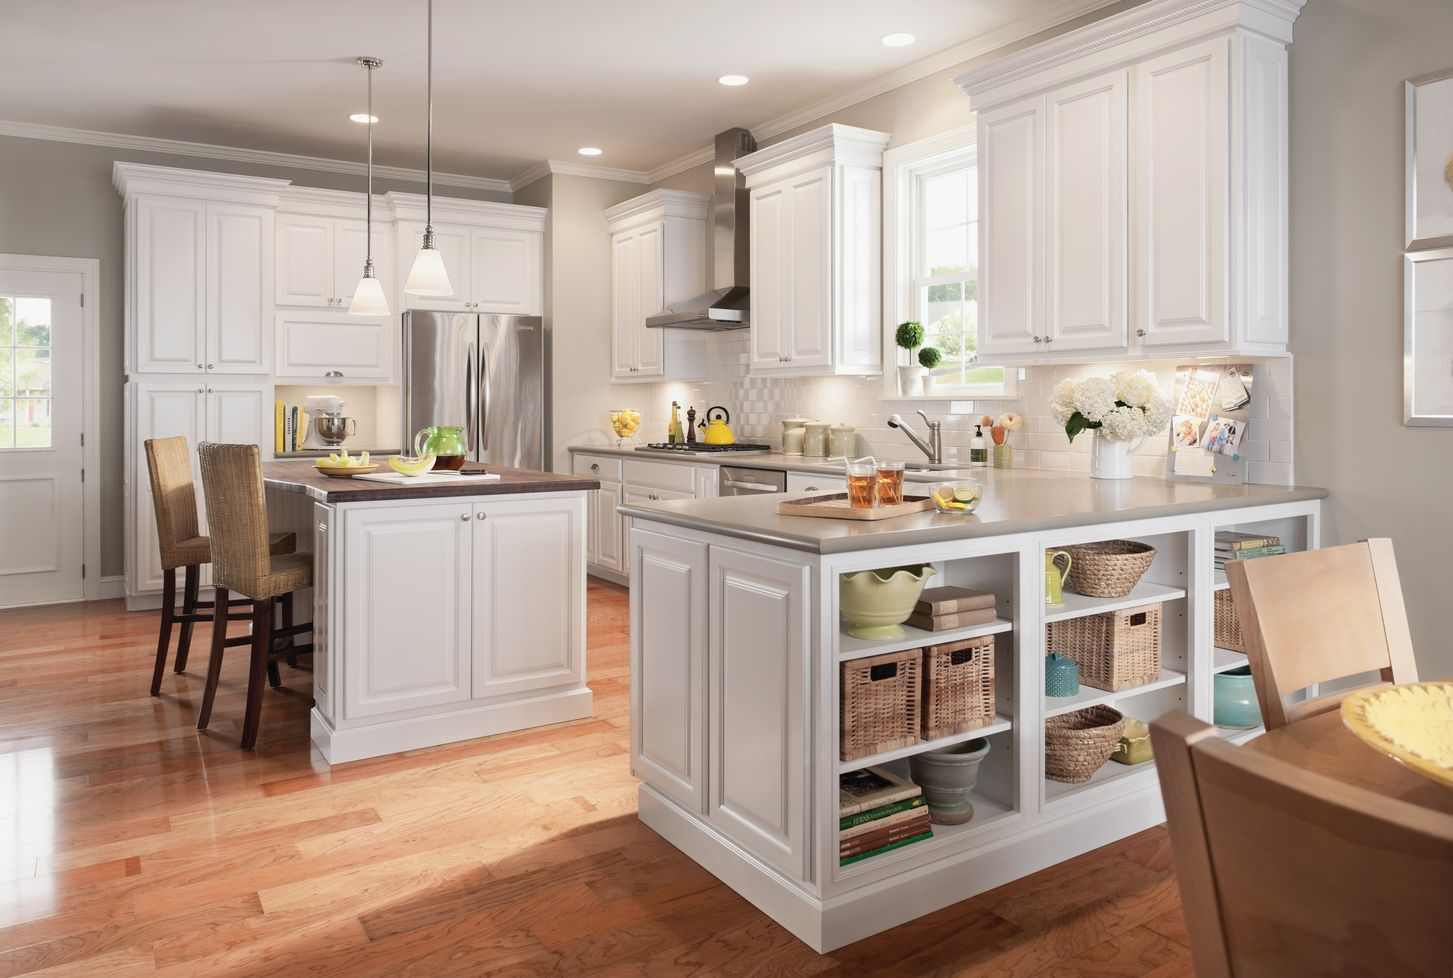 Cabinetry from the newport collection by american woodmark